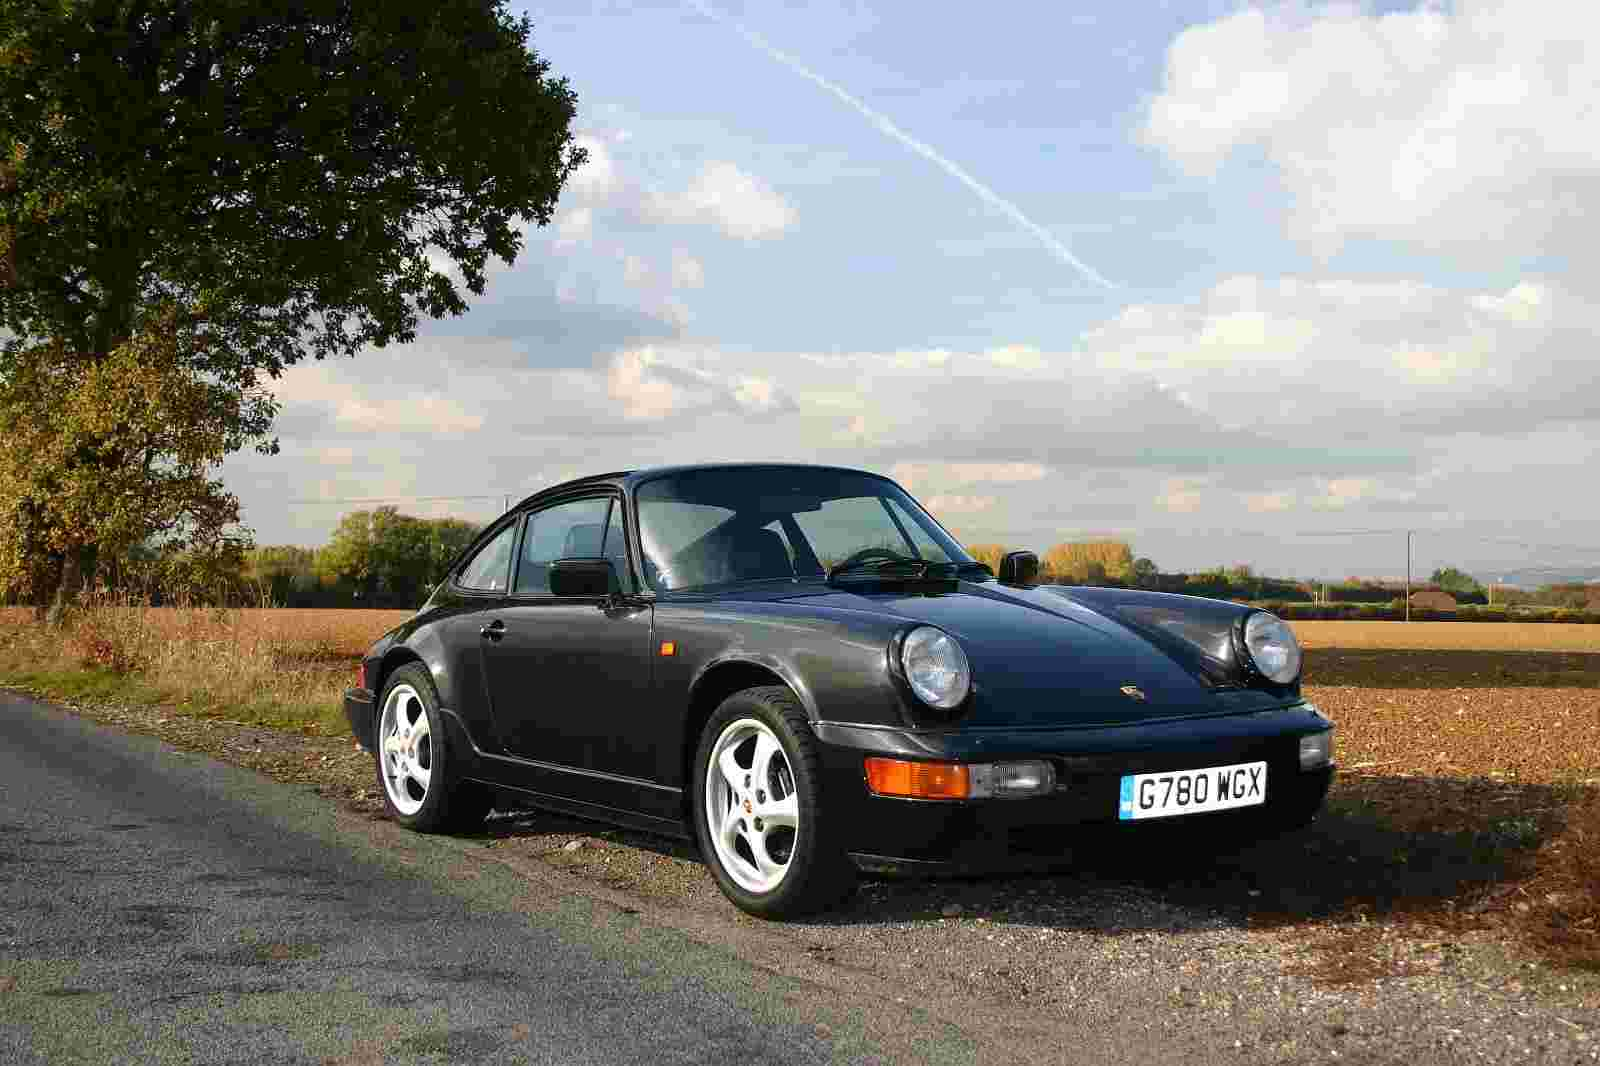 Porsche 964 Wallpaper Hd Porsche Satin Black Metallic 1600x1066 Wallpaper Teahub Io